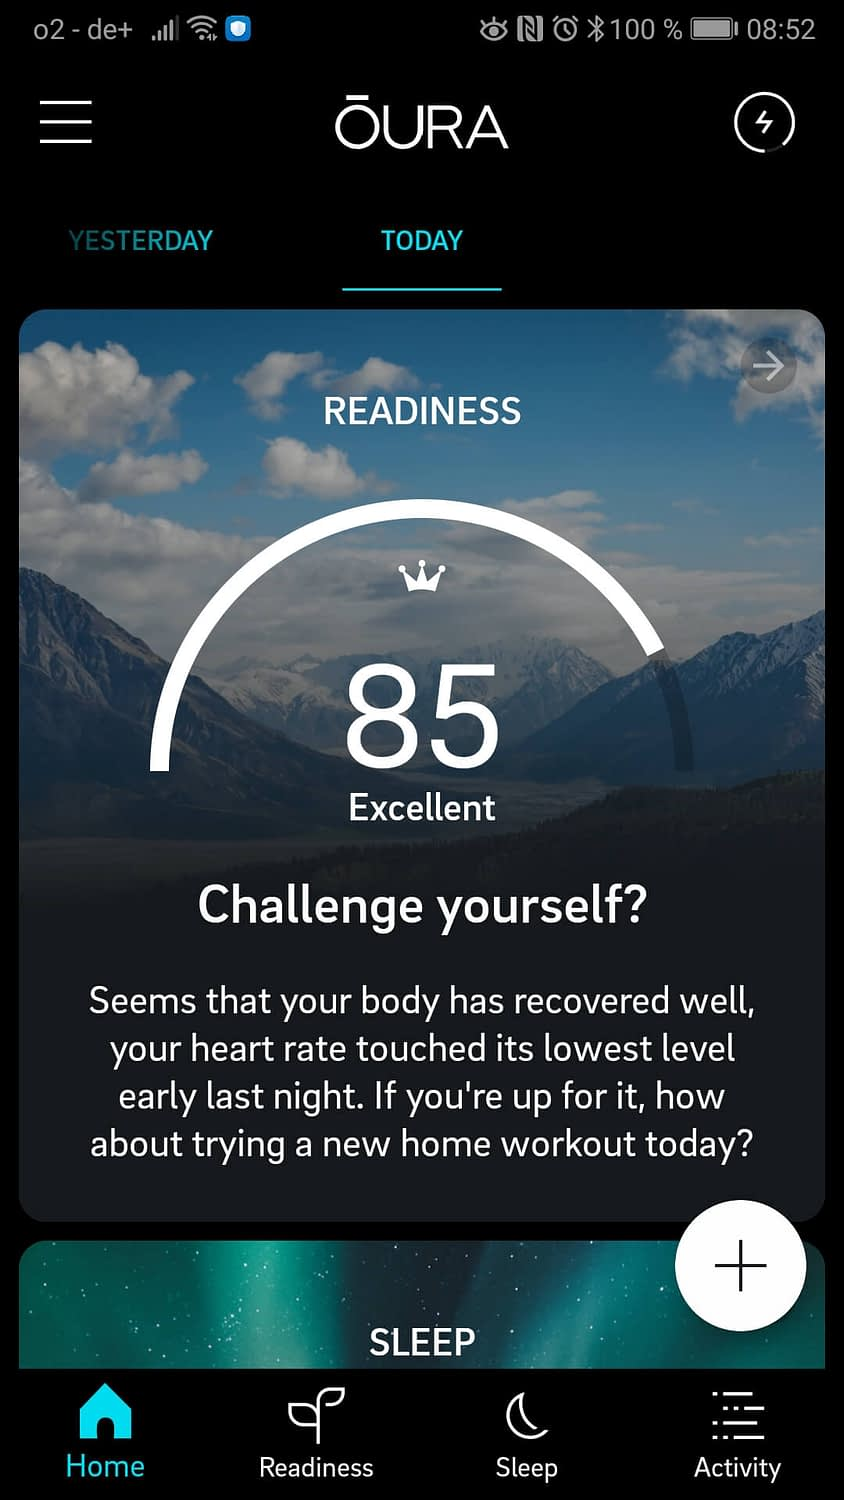 Oura-Ring-Readiness-Score